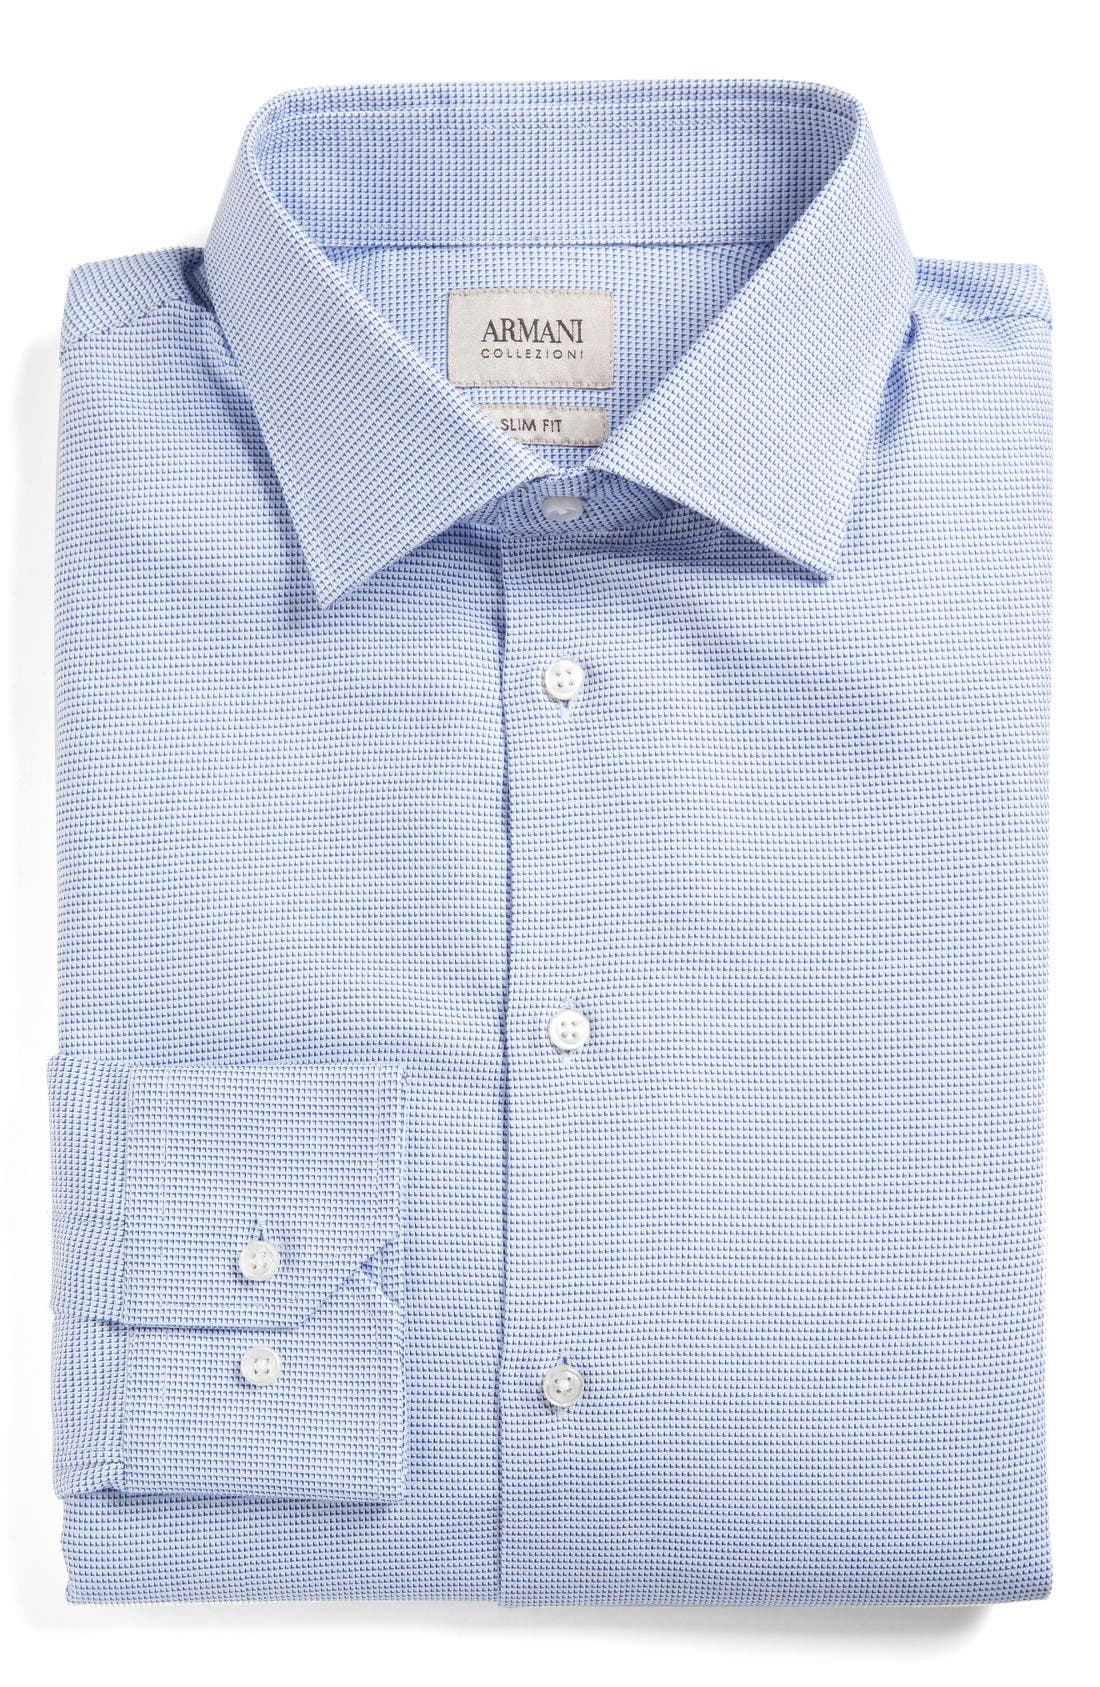 ARMANI COLLEZIONI Slim Fit Neat Dress Shirt